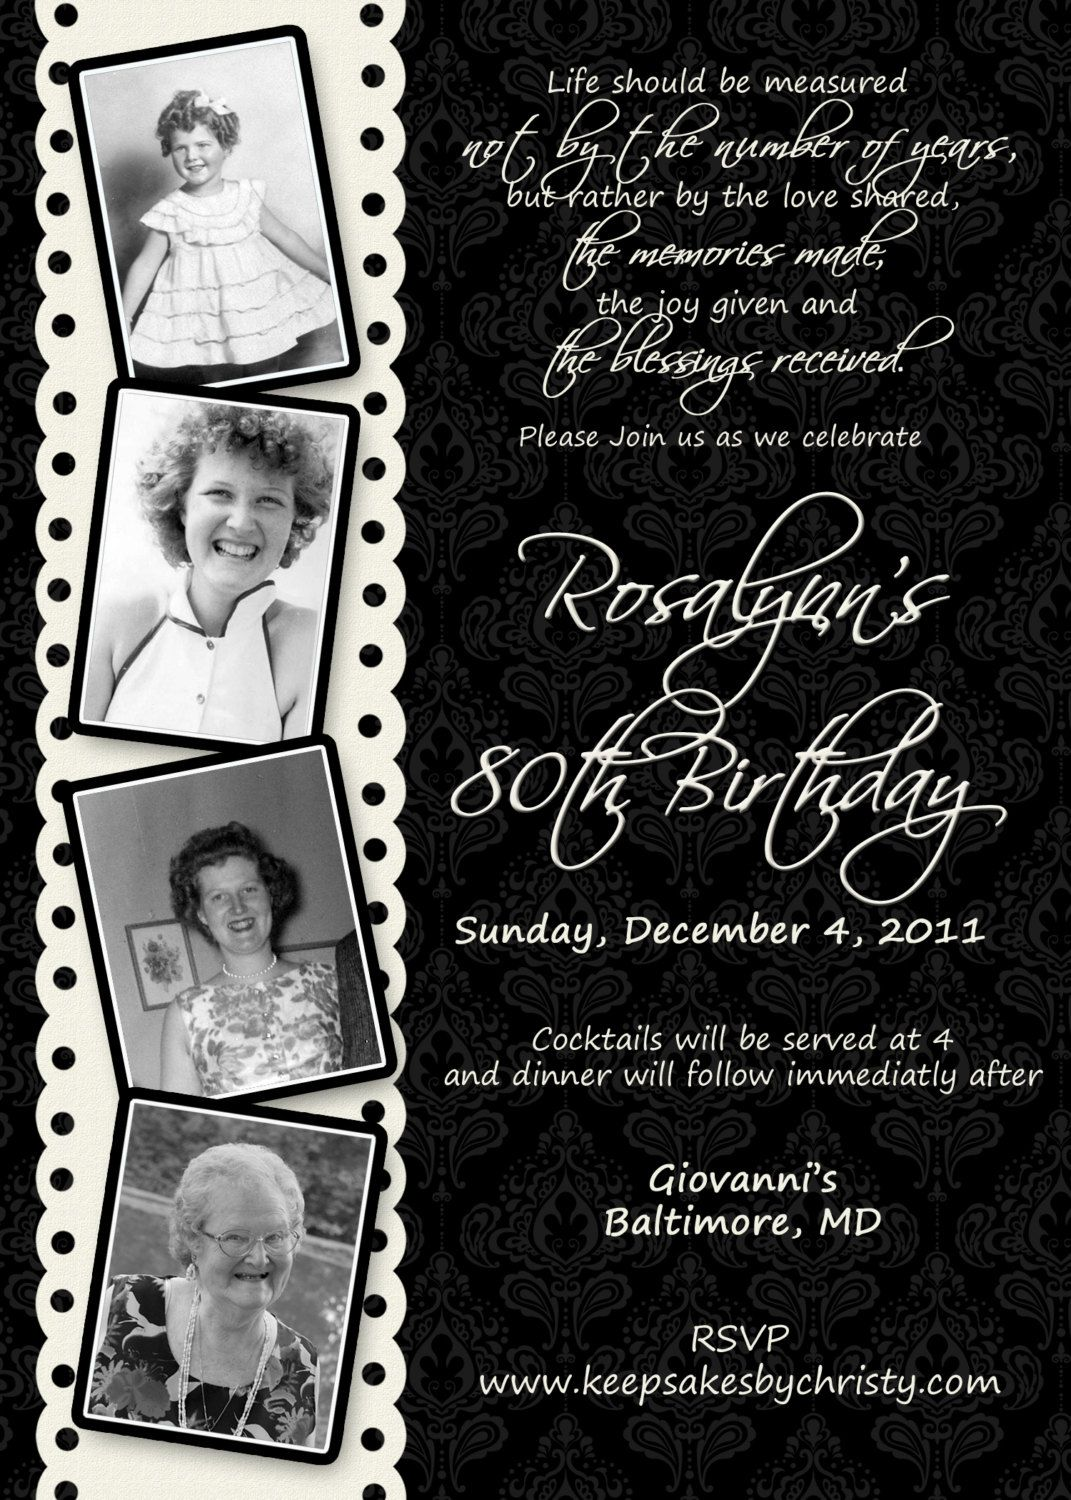 Custom Birthday Invitation 1095 USD Via Etsy My Grandmothers 90th Is In October Time To Start Planning